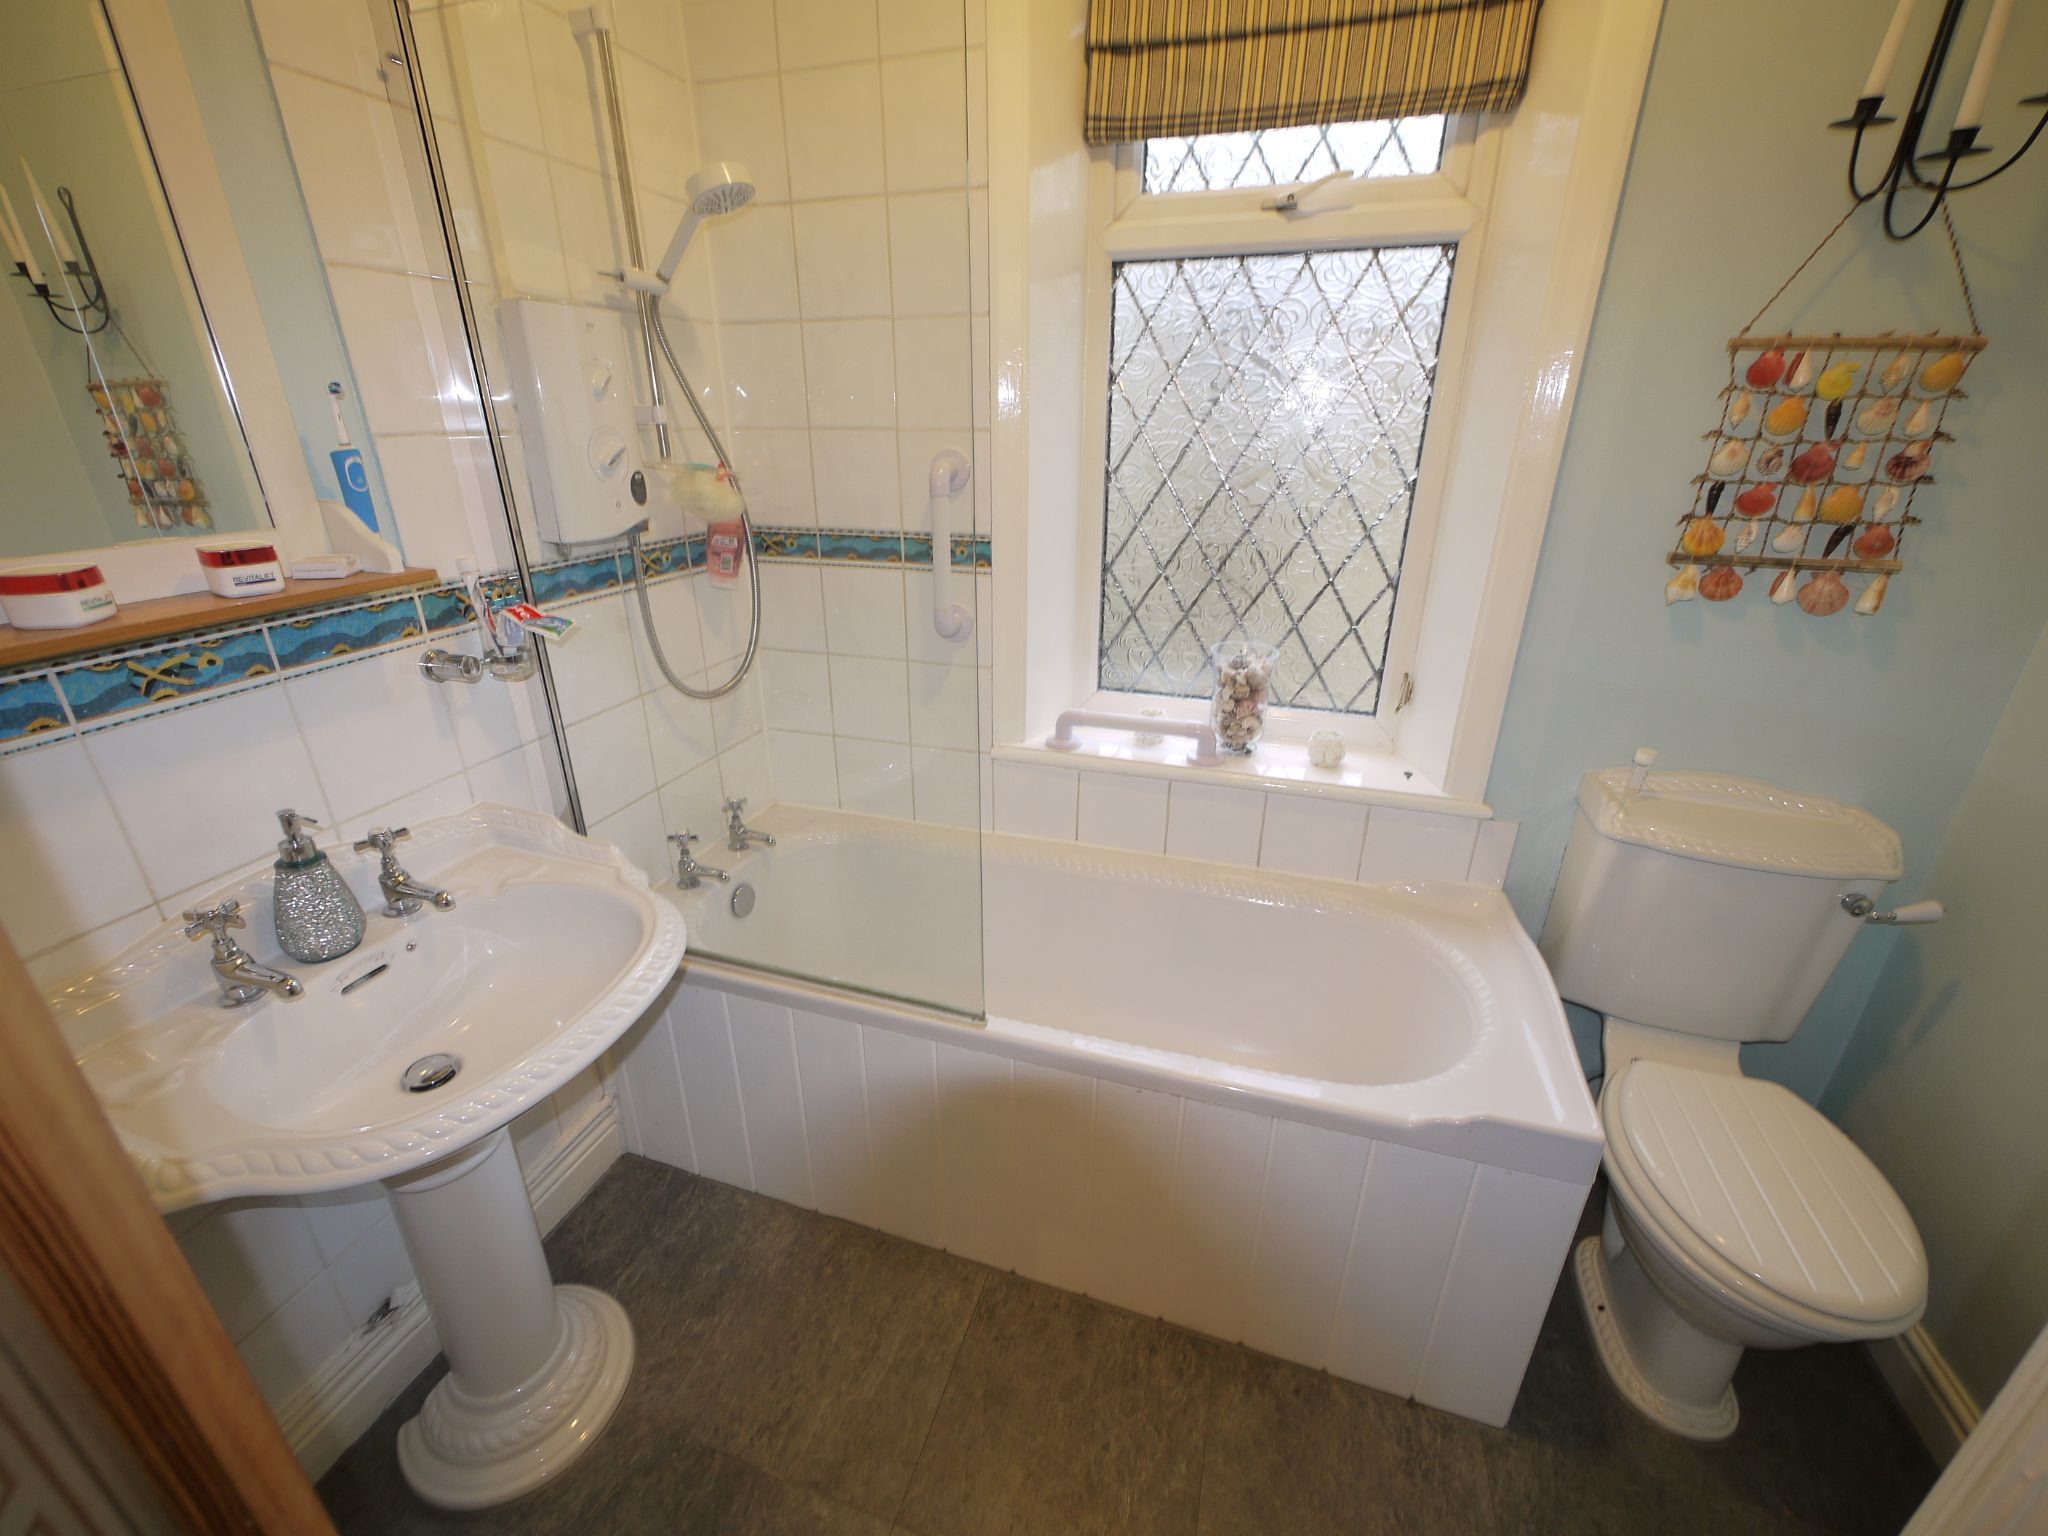 3 bedroom semi-detached house For Sale in Calderdale - Photograph 12.